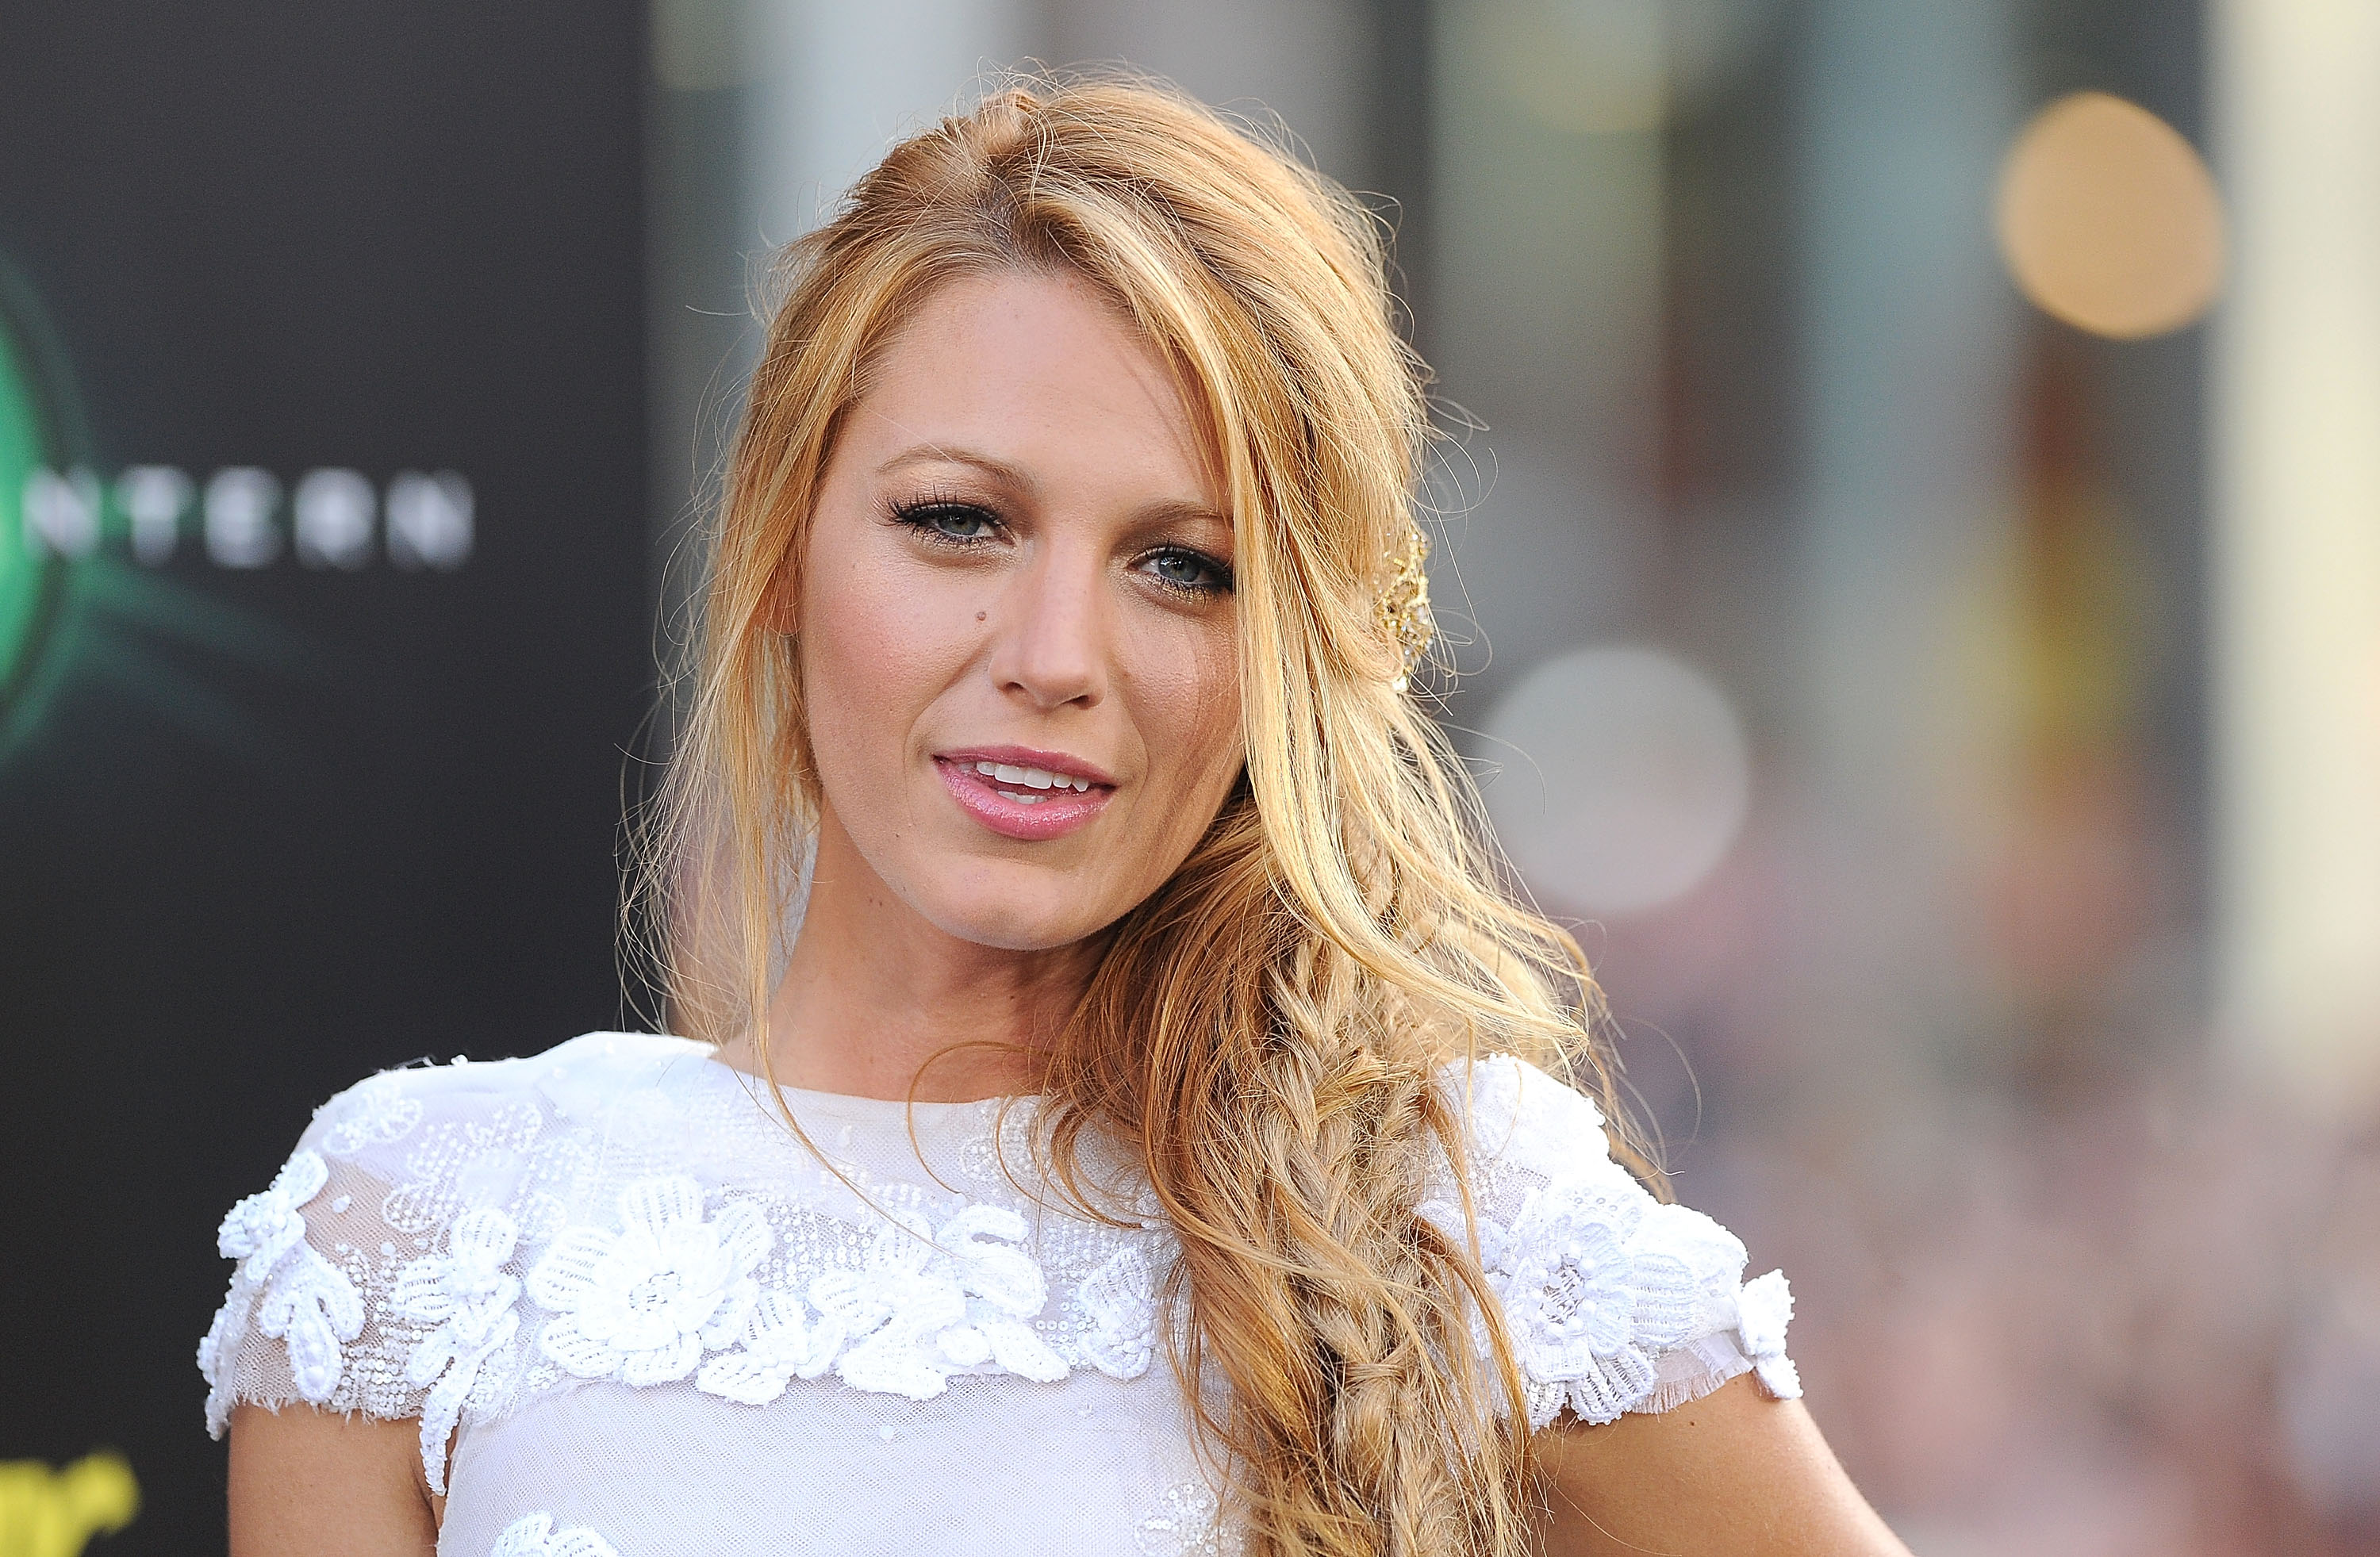 14 Unbelievably Cheesy Recipes Blake Lively Would Love